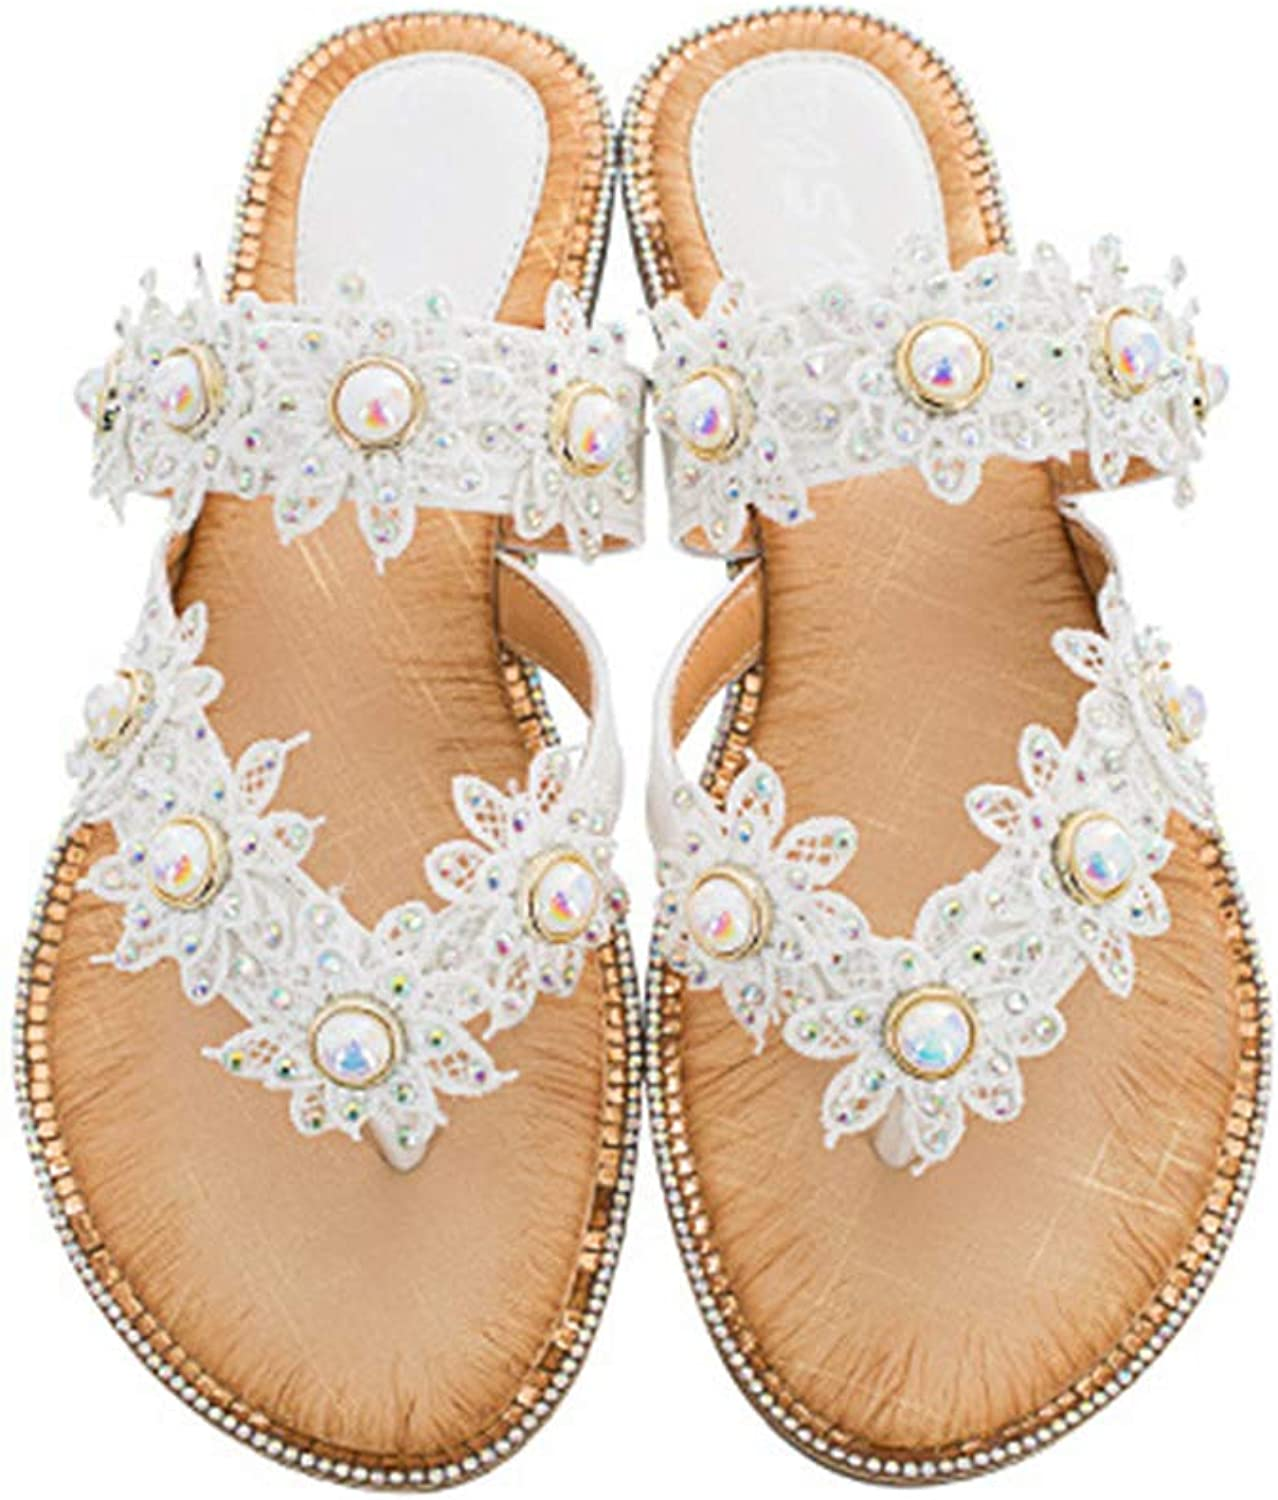 Mubeuo Women's Leather Floral Beaded Pearls Flip Flops Thong Sandals